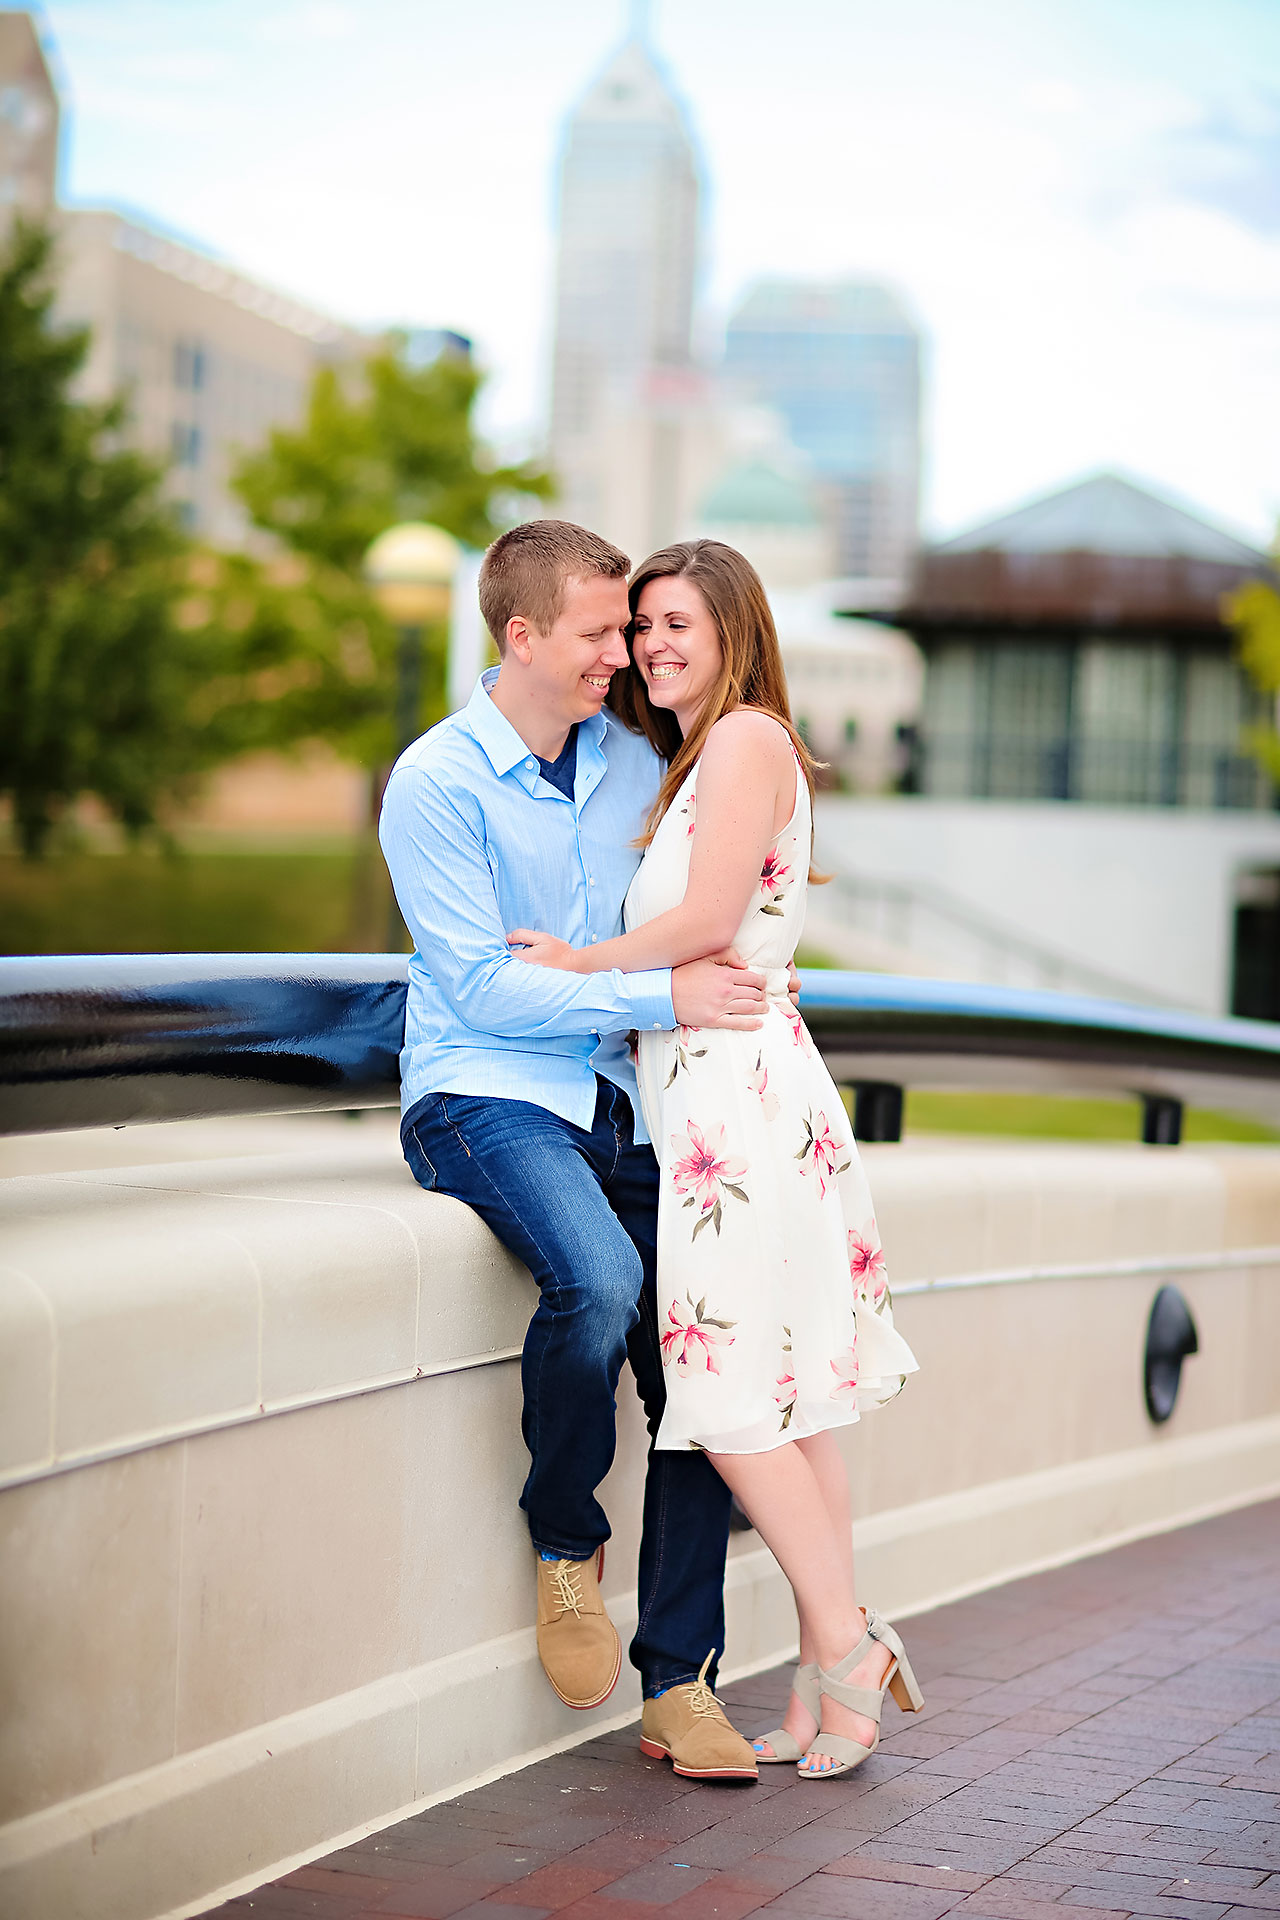 Chelsea Jeff Downtown Indy Engagement Session 147